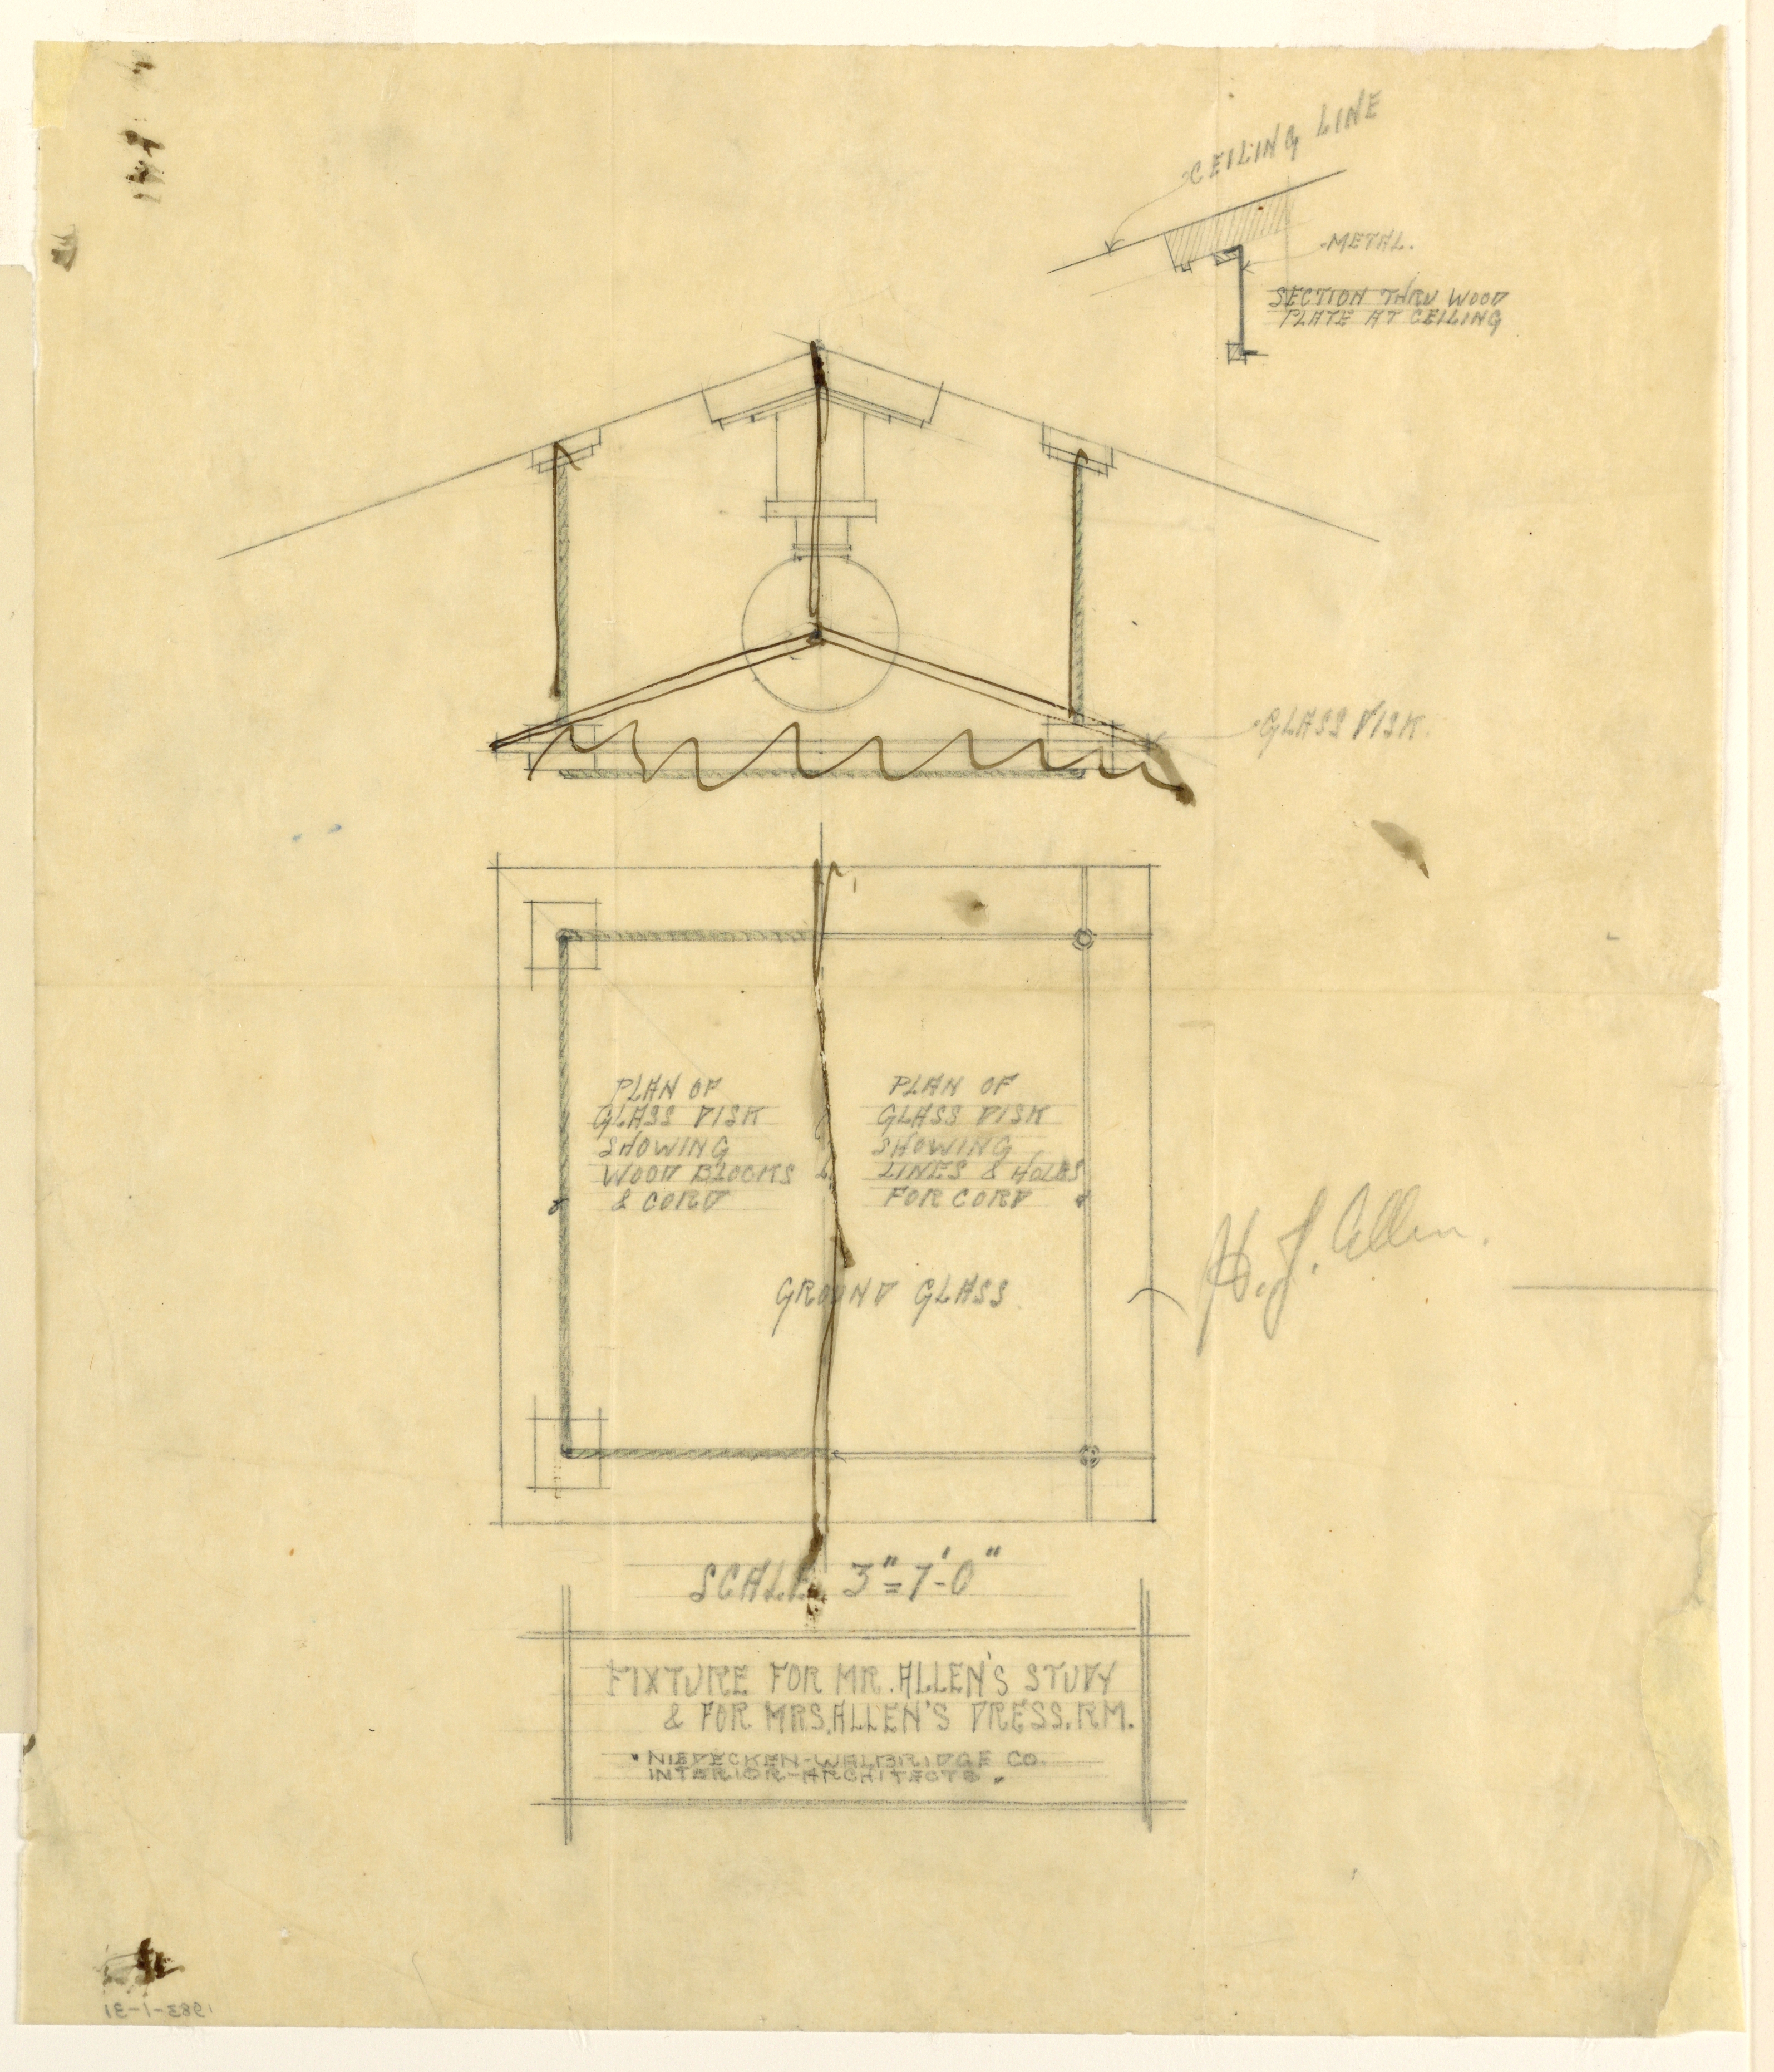 FileDrawing Light Fixture And Plan Of Glass Disc For Mr Allens Study